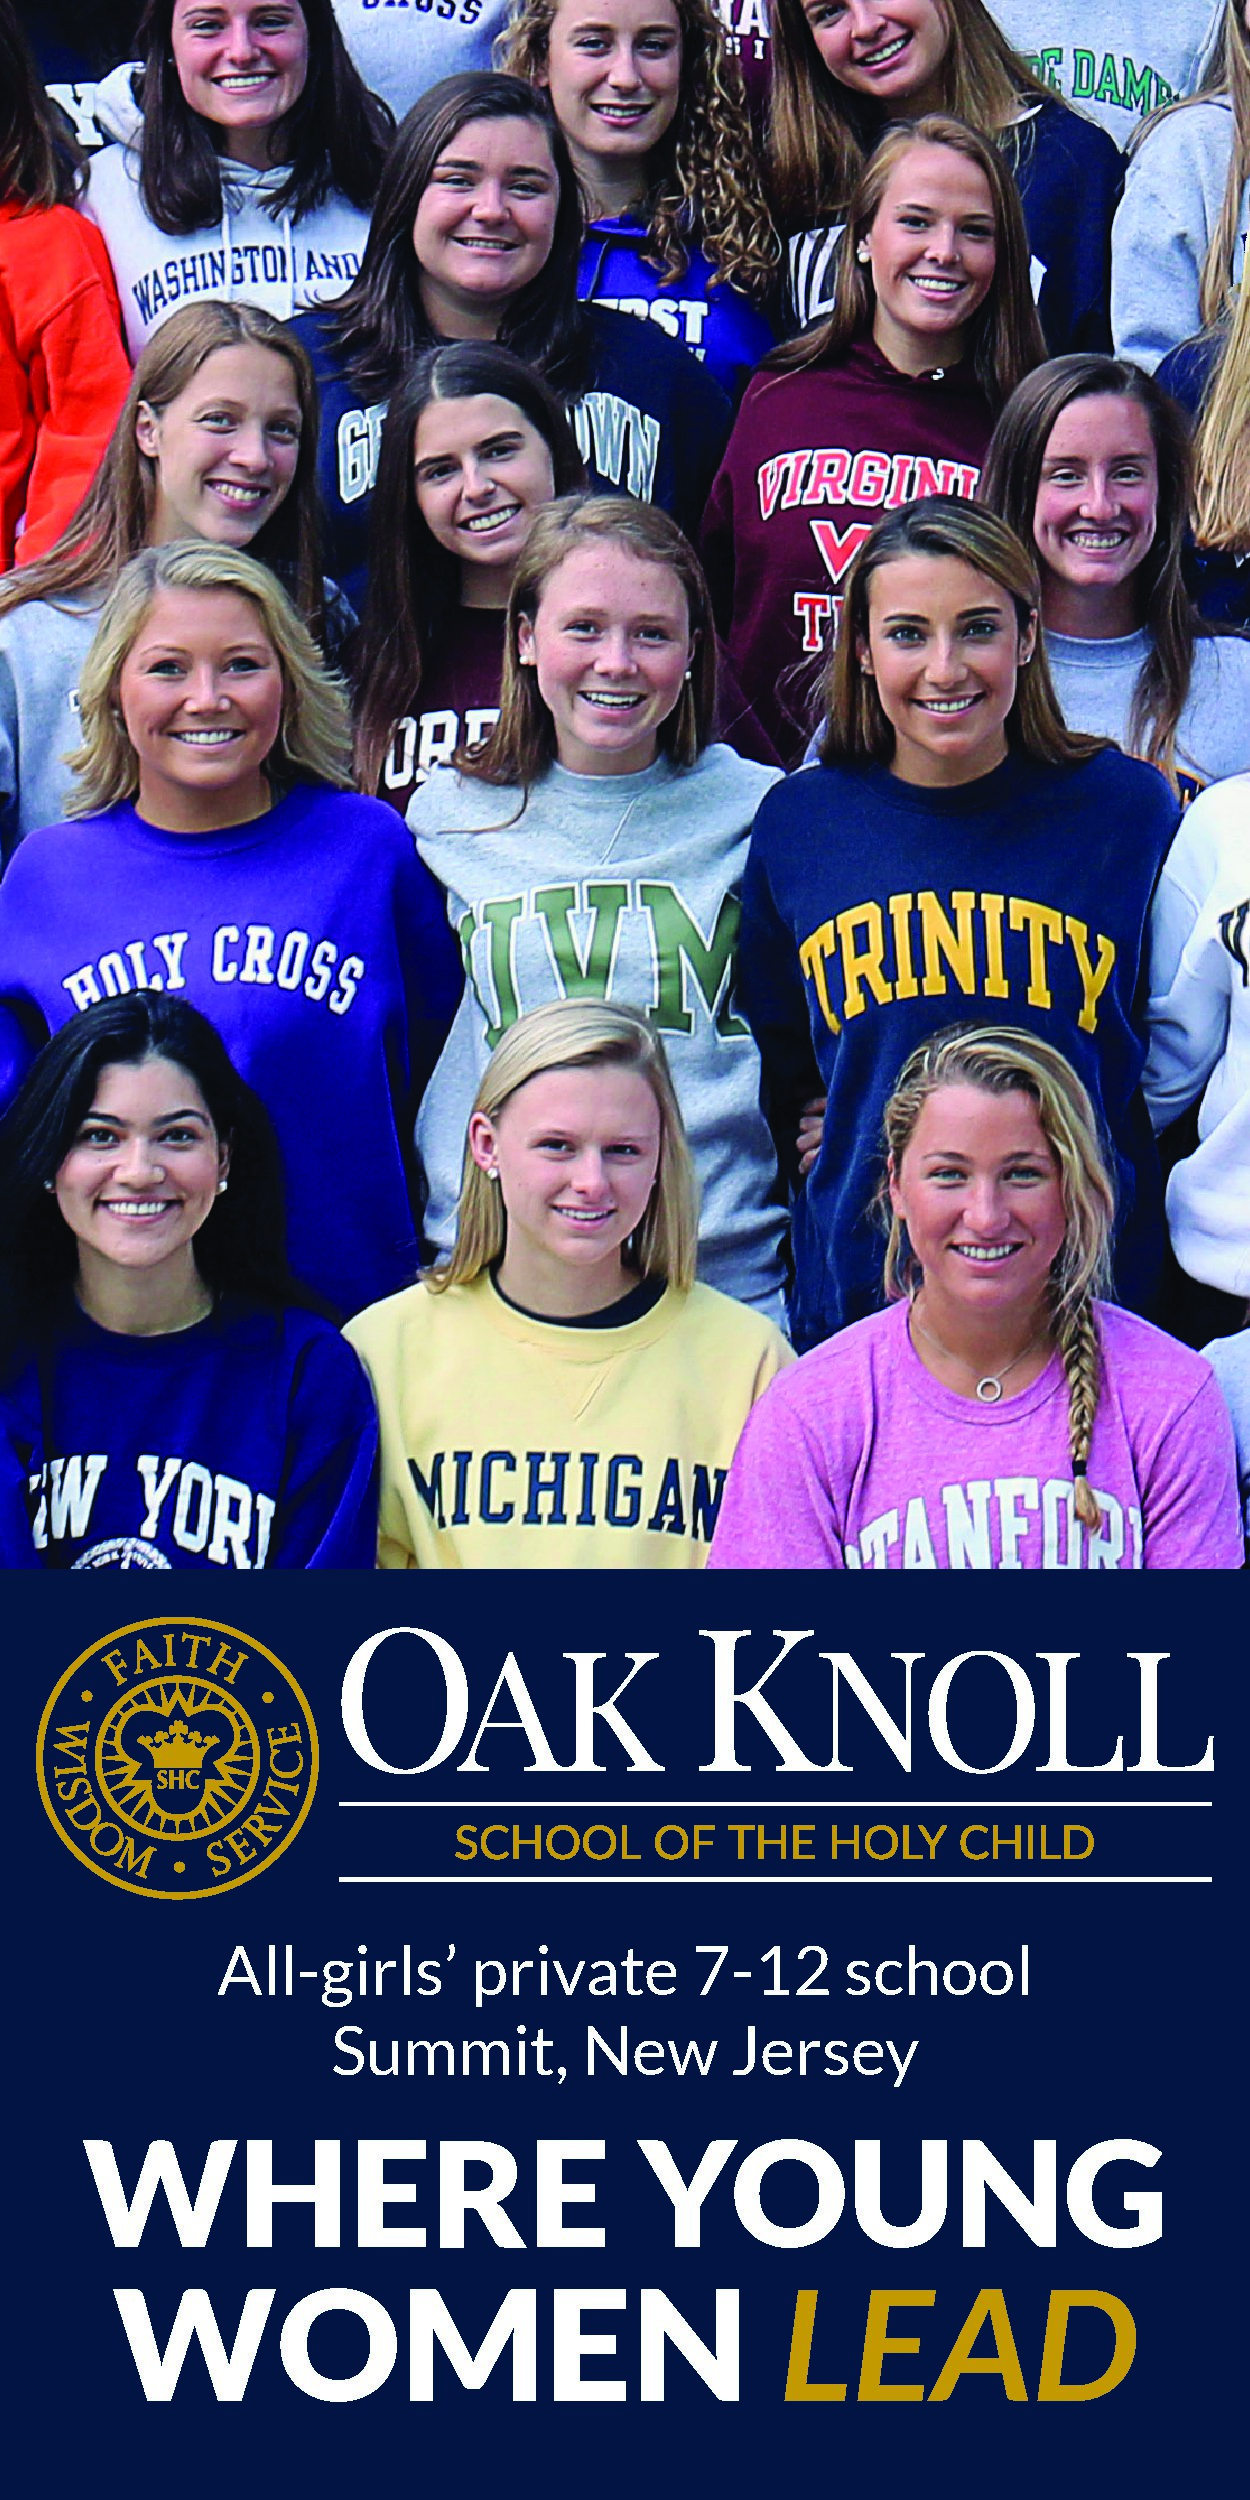 An Upper School ad for Oak Knoll School of the Holy Child